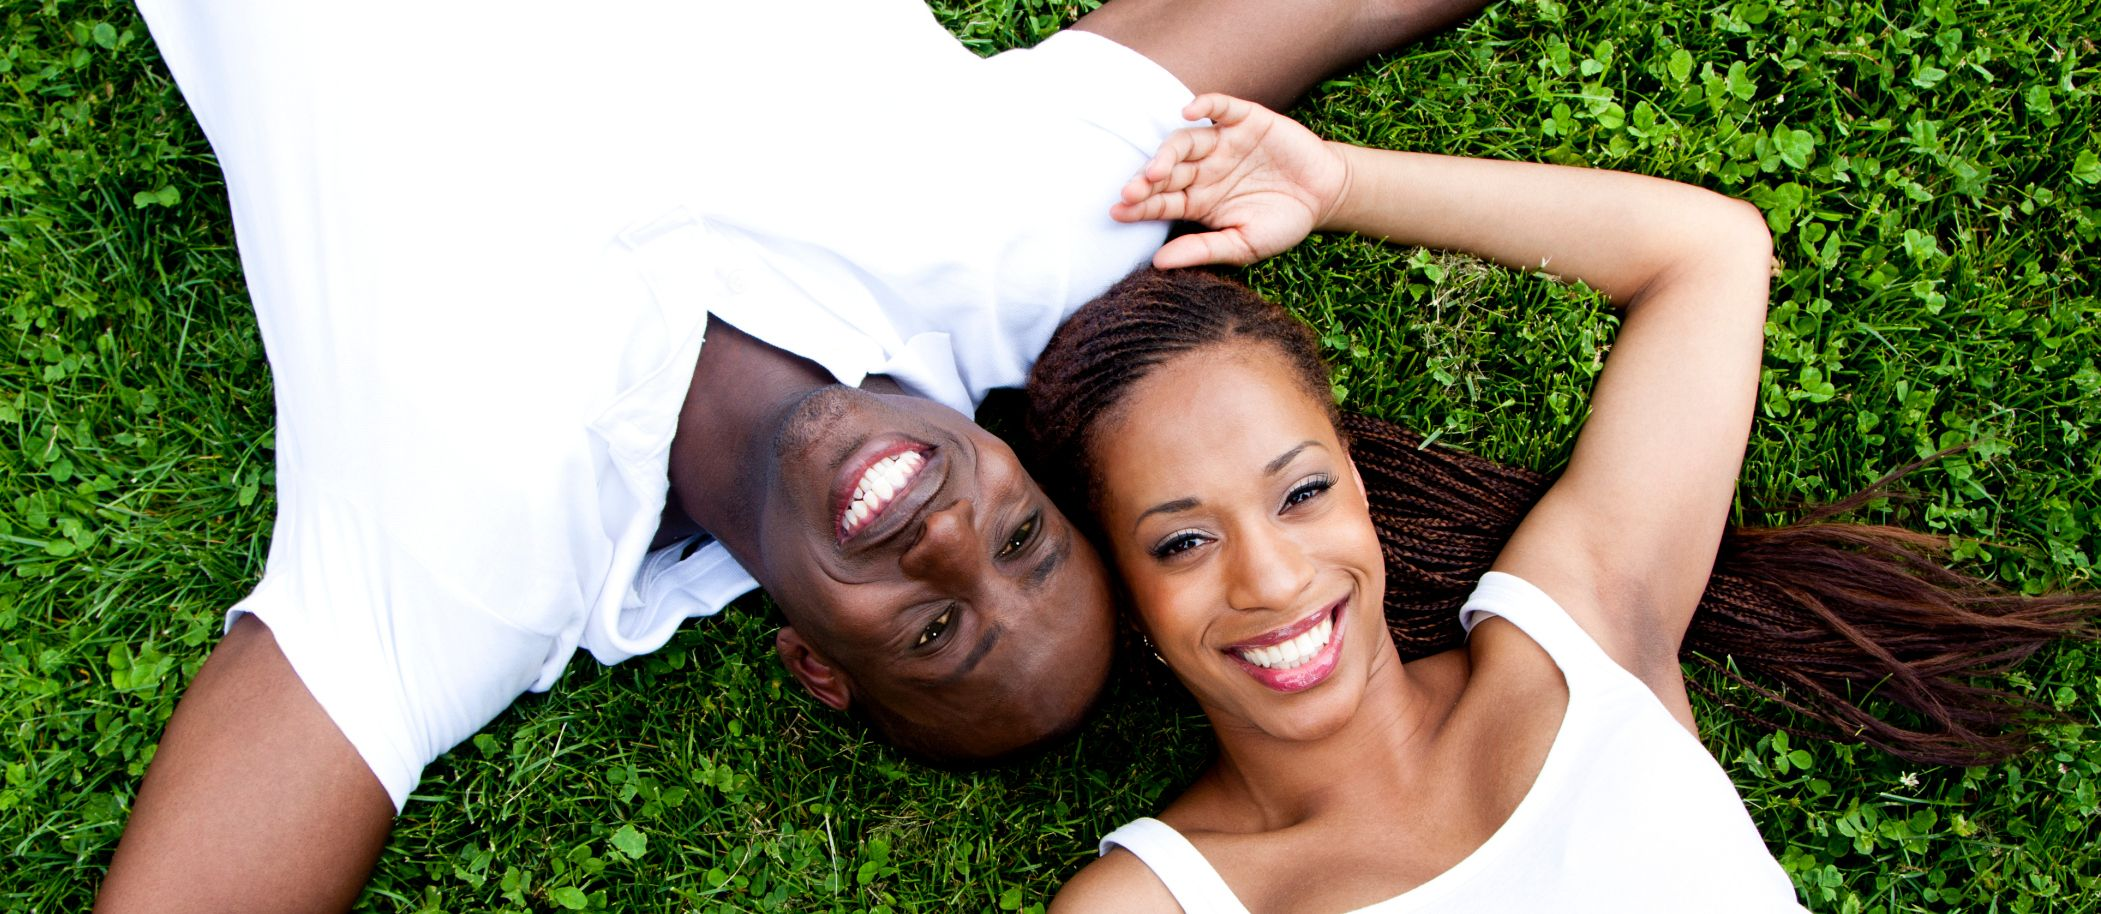 Dating Rules A Woman For Black combinations can